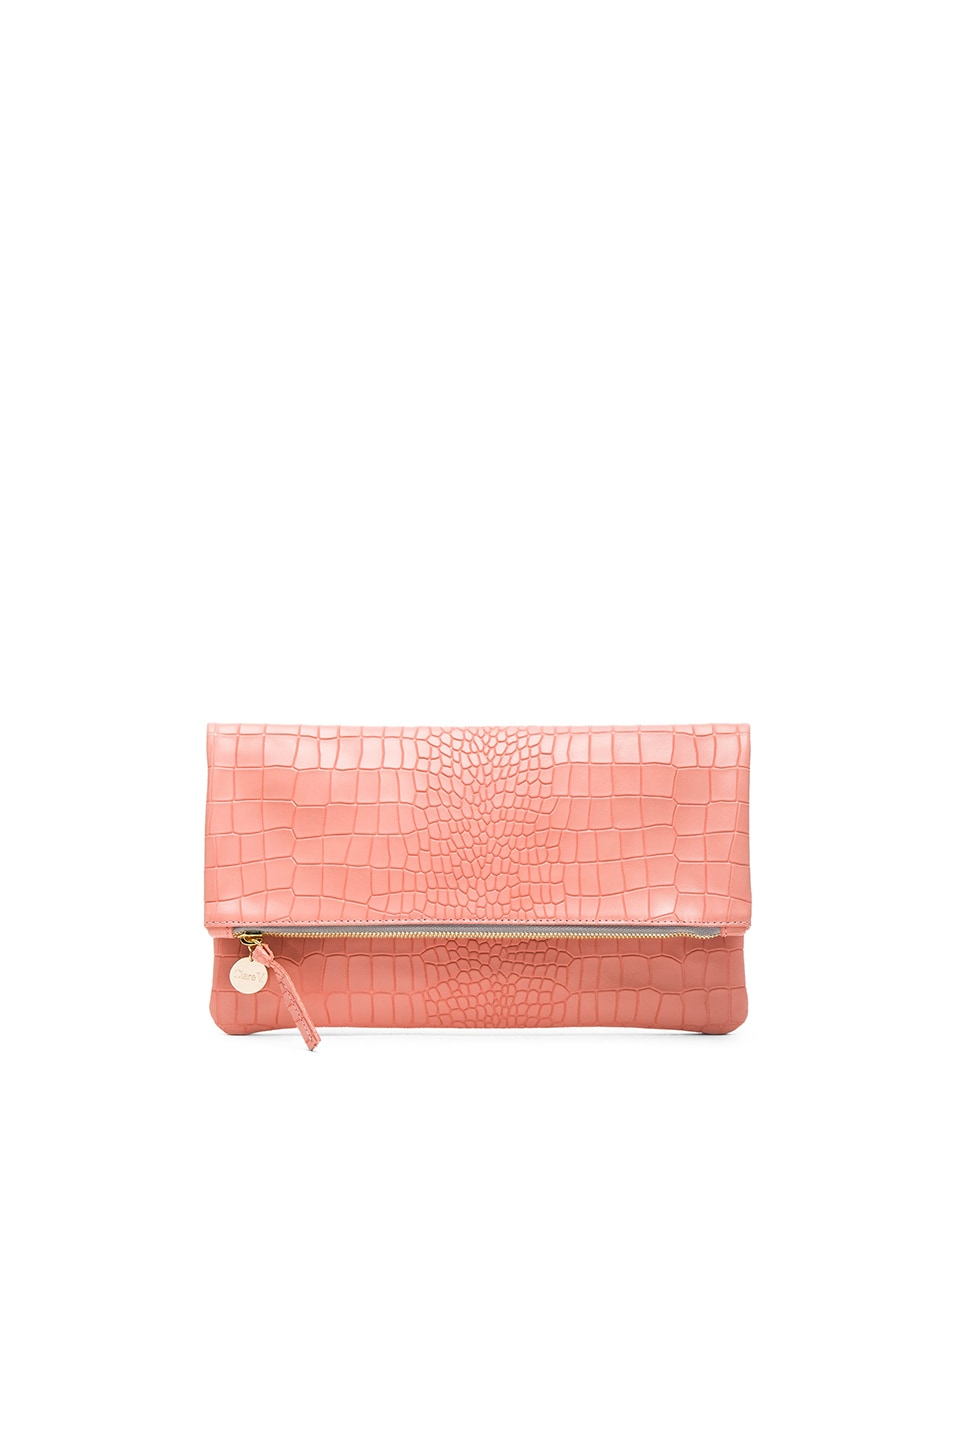 Clare V. Foldover Clutch in Coral Croco